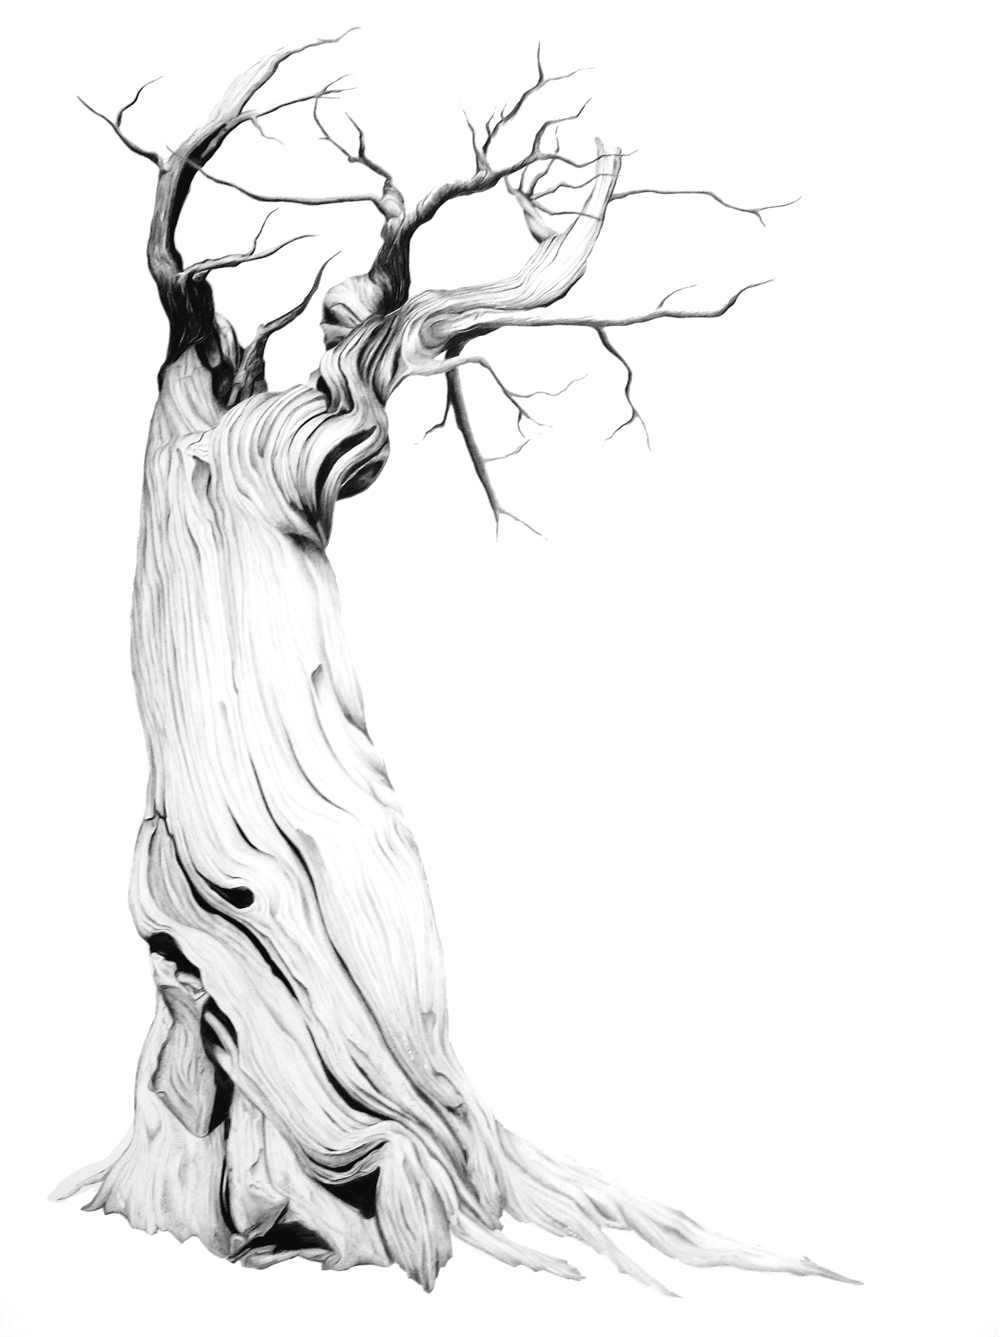 "Bristlecone, Graphite on Claybord, 18"" x 24"", 2009"